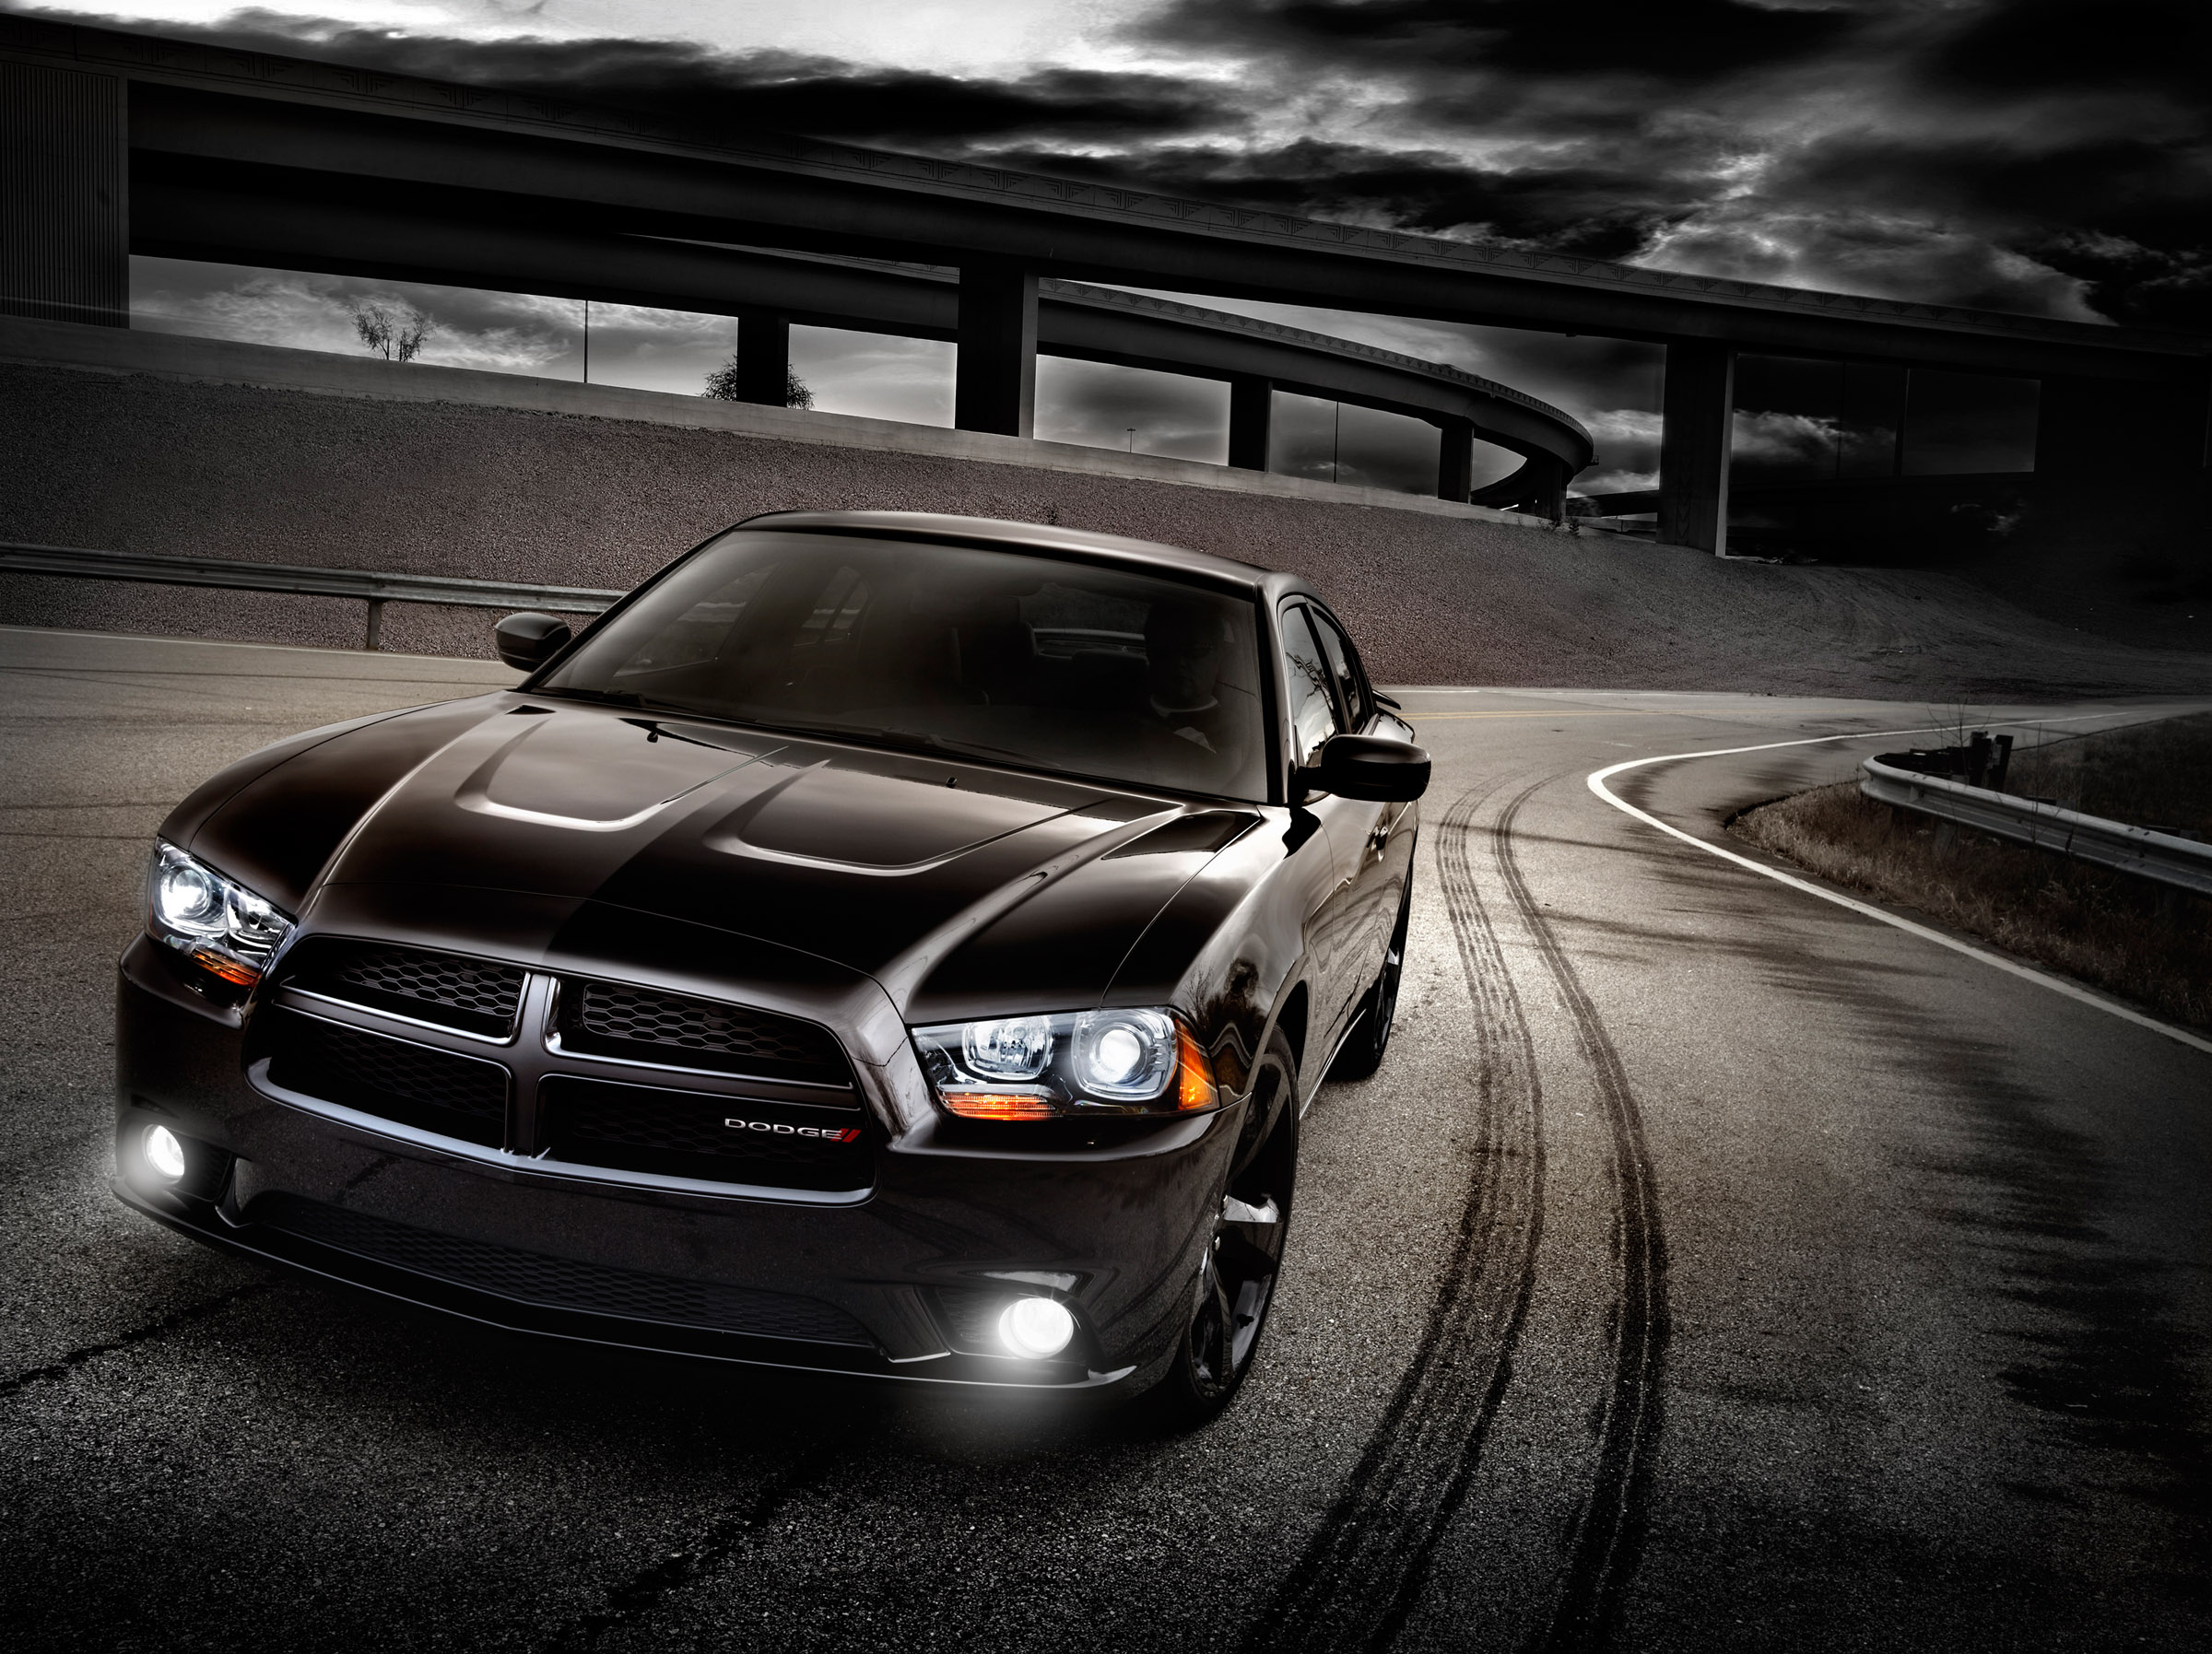 2012 dodge charger blacktop - Dodge Charger 2012